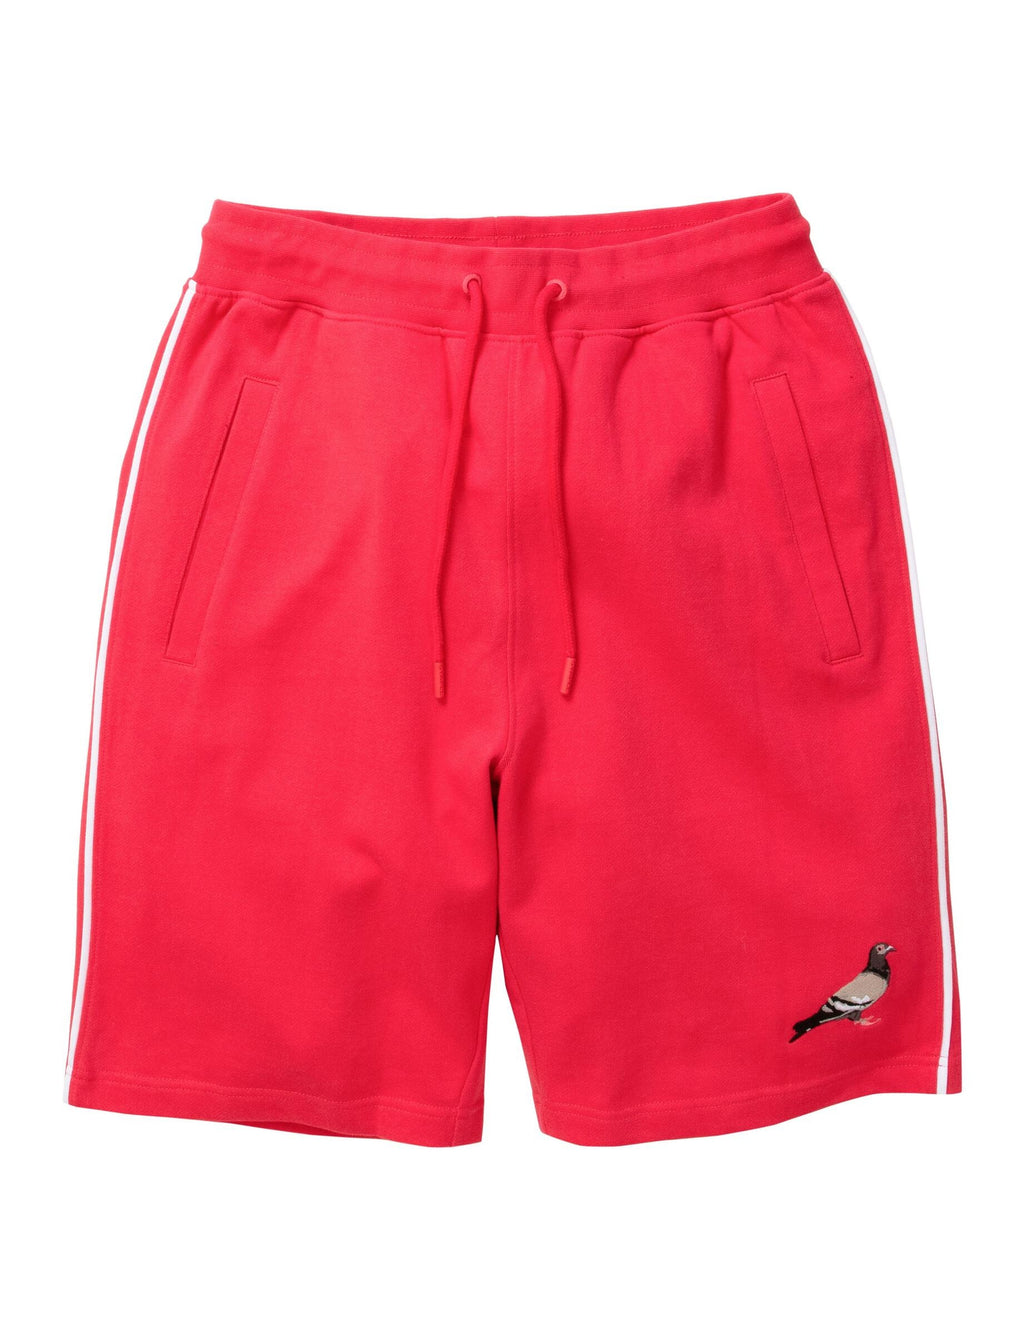 Piped Sweatshort - Shorts | Staple Pigeon